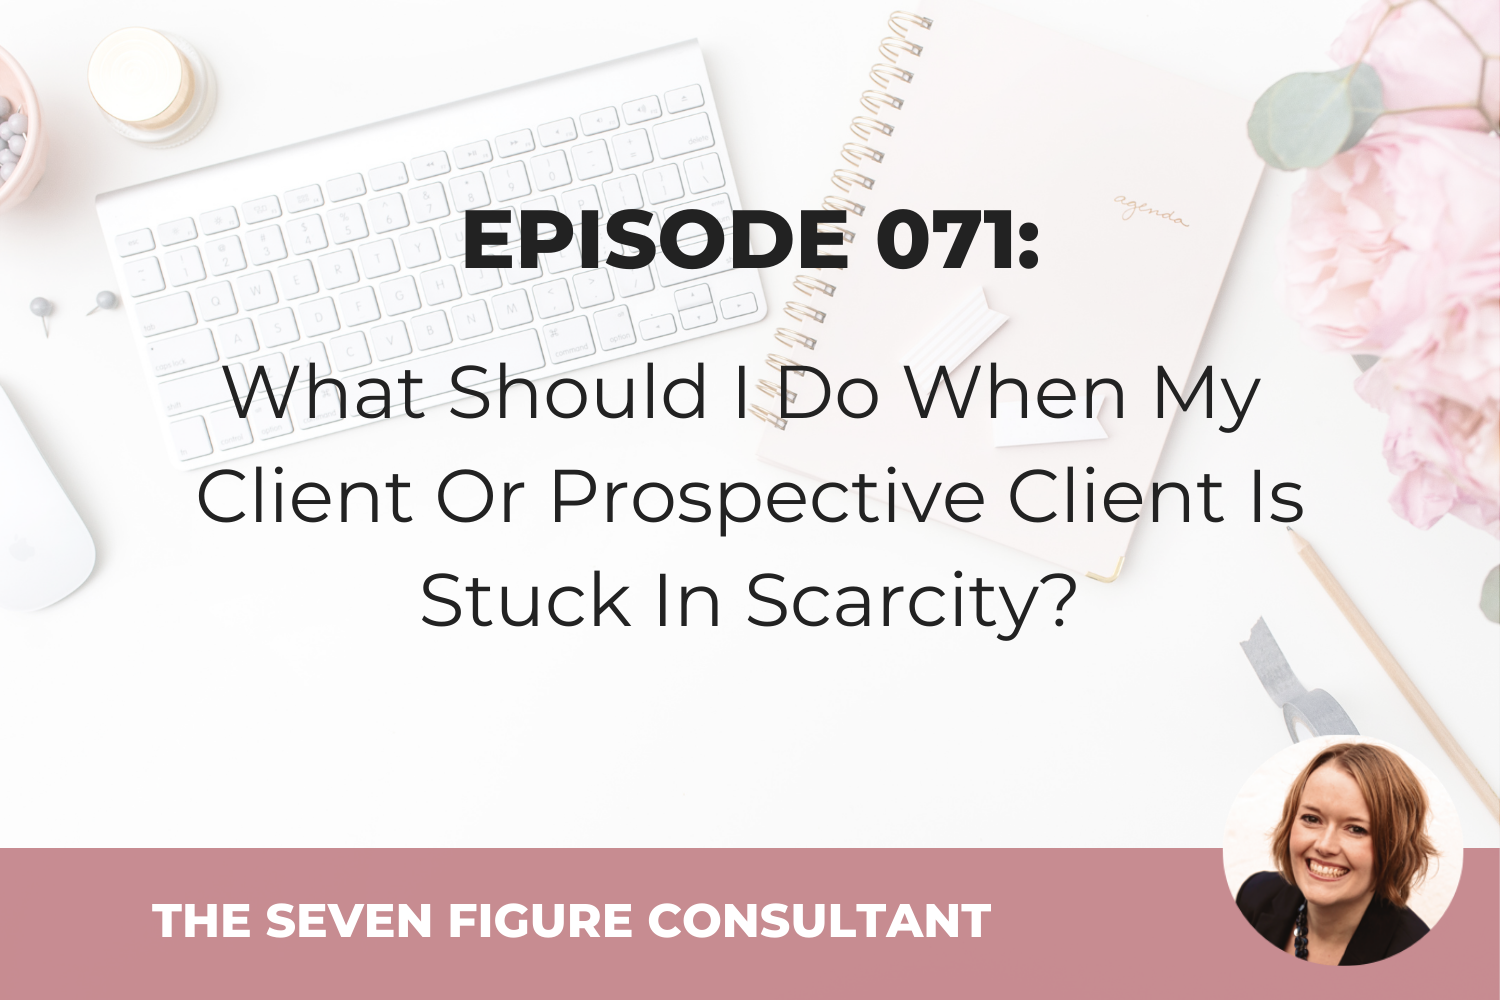 Episode 071: What Should I Do When My Client Or Prospective Client Is Stuck In Scarcity?